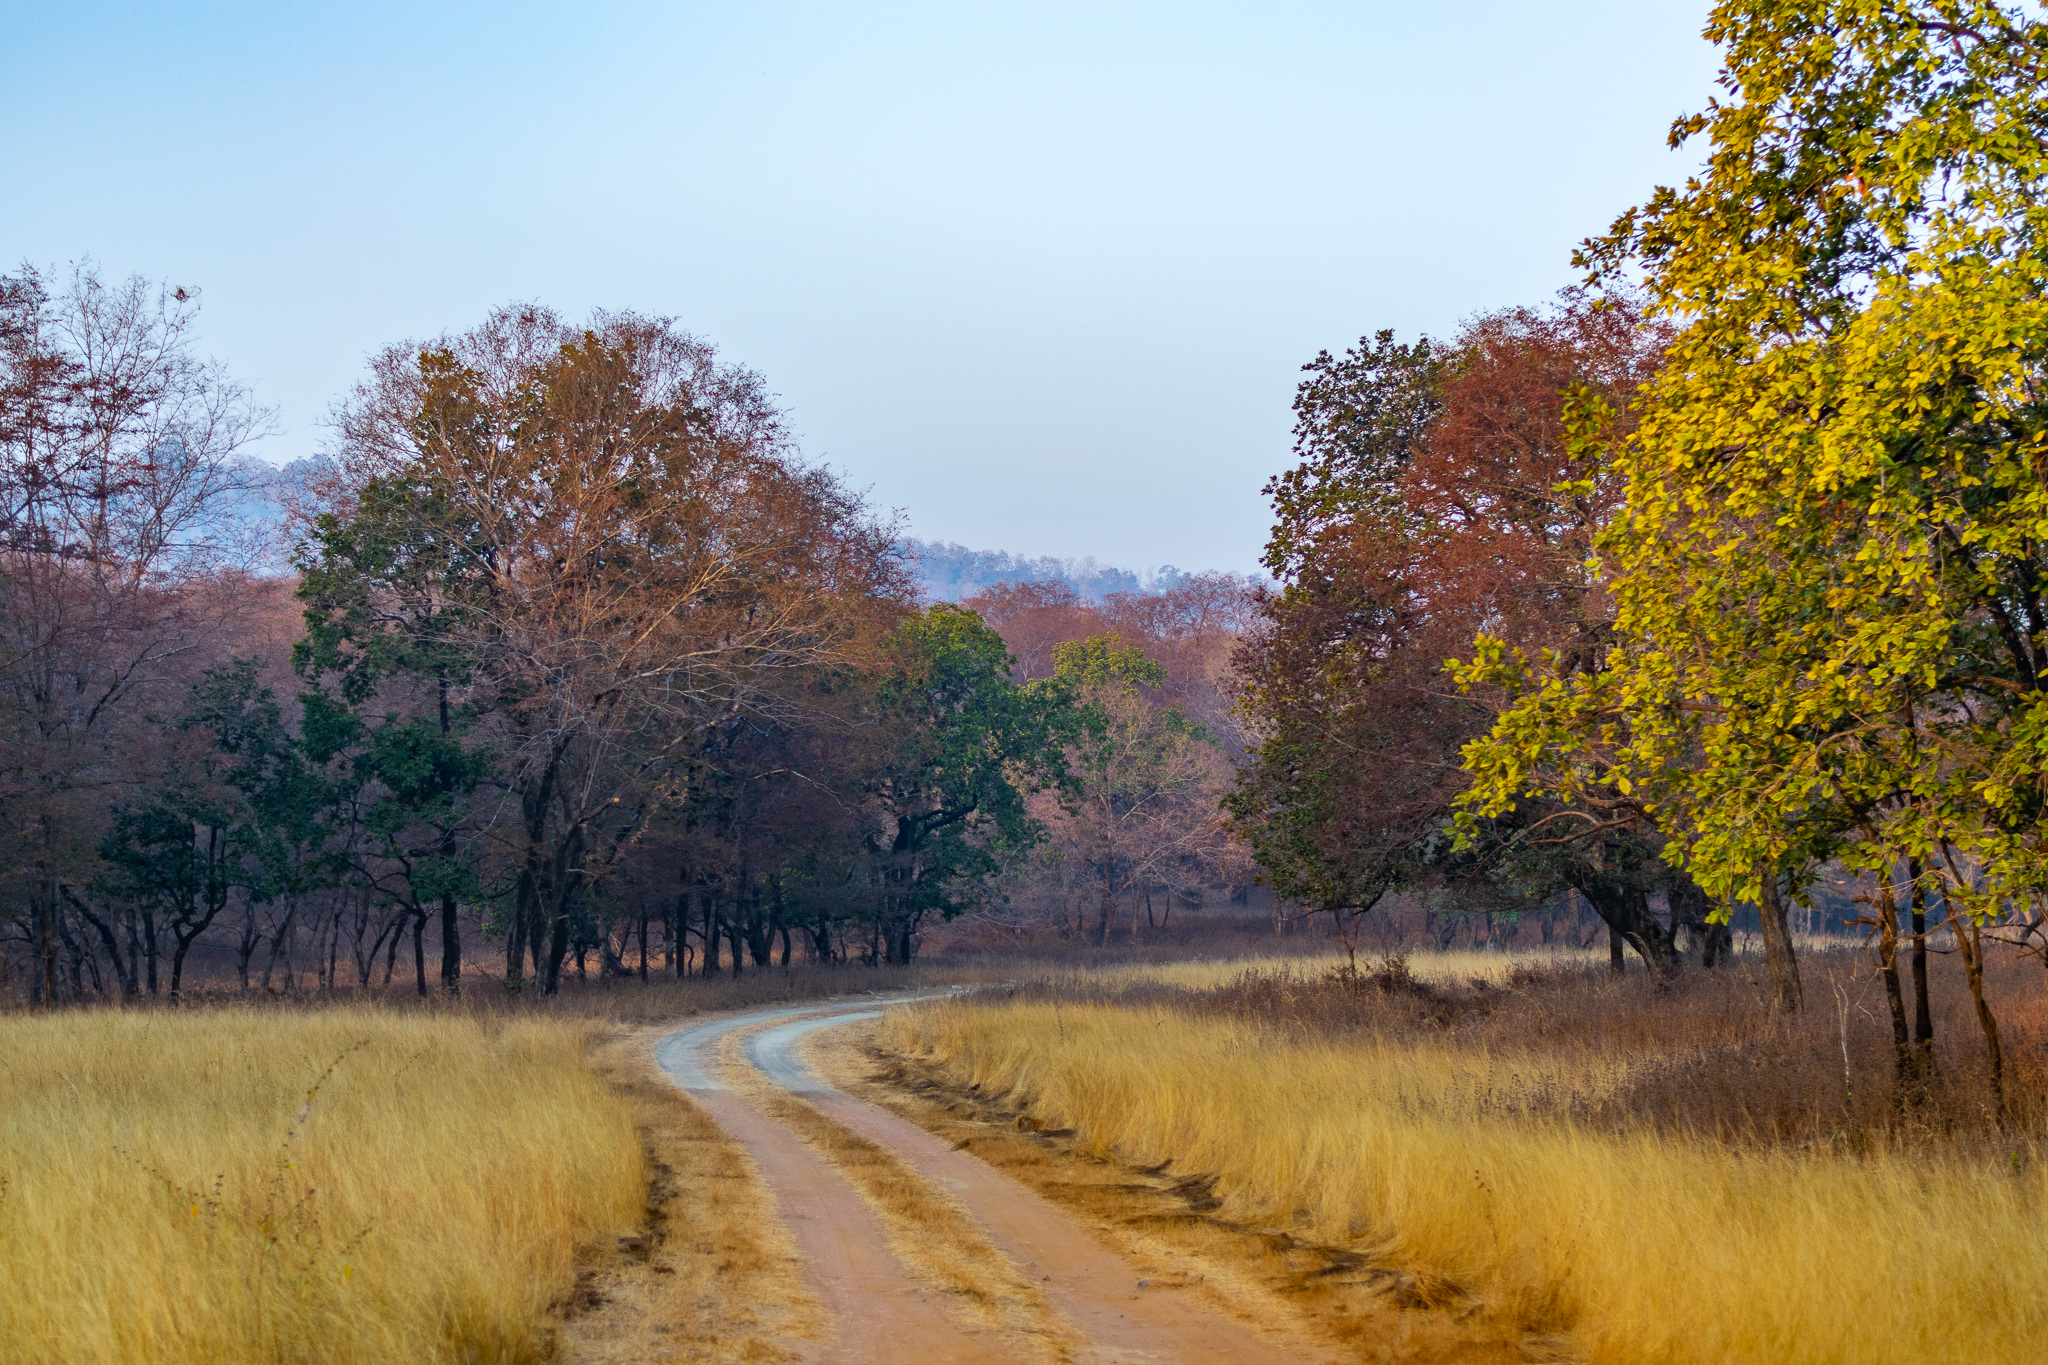 In summer, the grasslands of Panna become dry and golden — the kind of tinder that's ideal fuel for forest fires. This is a major concern for the forest department as summer fires can engulf up to eight kilometres of the landscape in a couple of hours. Photo: Suresh Kumar Yadav  Cover photo: The River Ken is the primary source of water in Panna Tiger Reserve. It flows through the park, feeding the flora and fauna, and creating stunning landscapes along the way.  Cover photo: Phalgun Patel